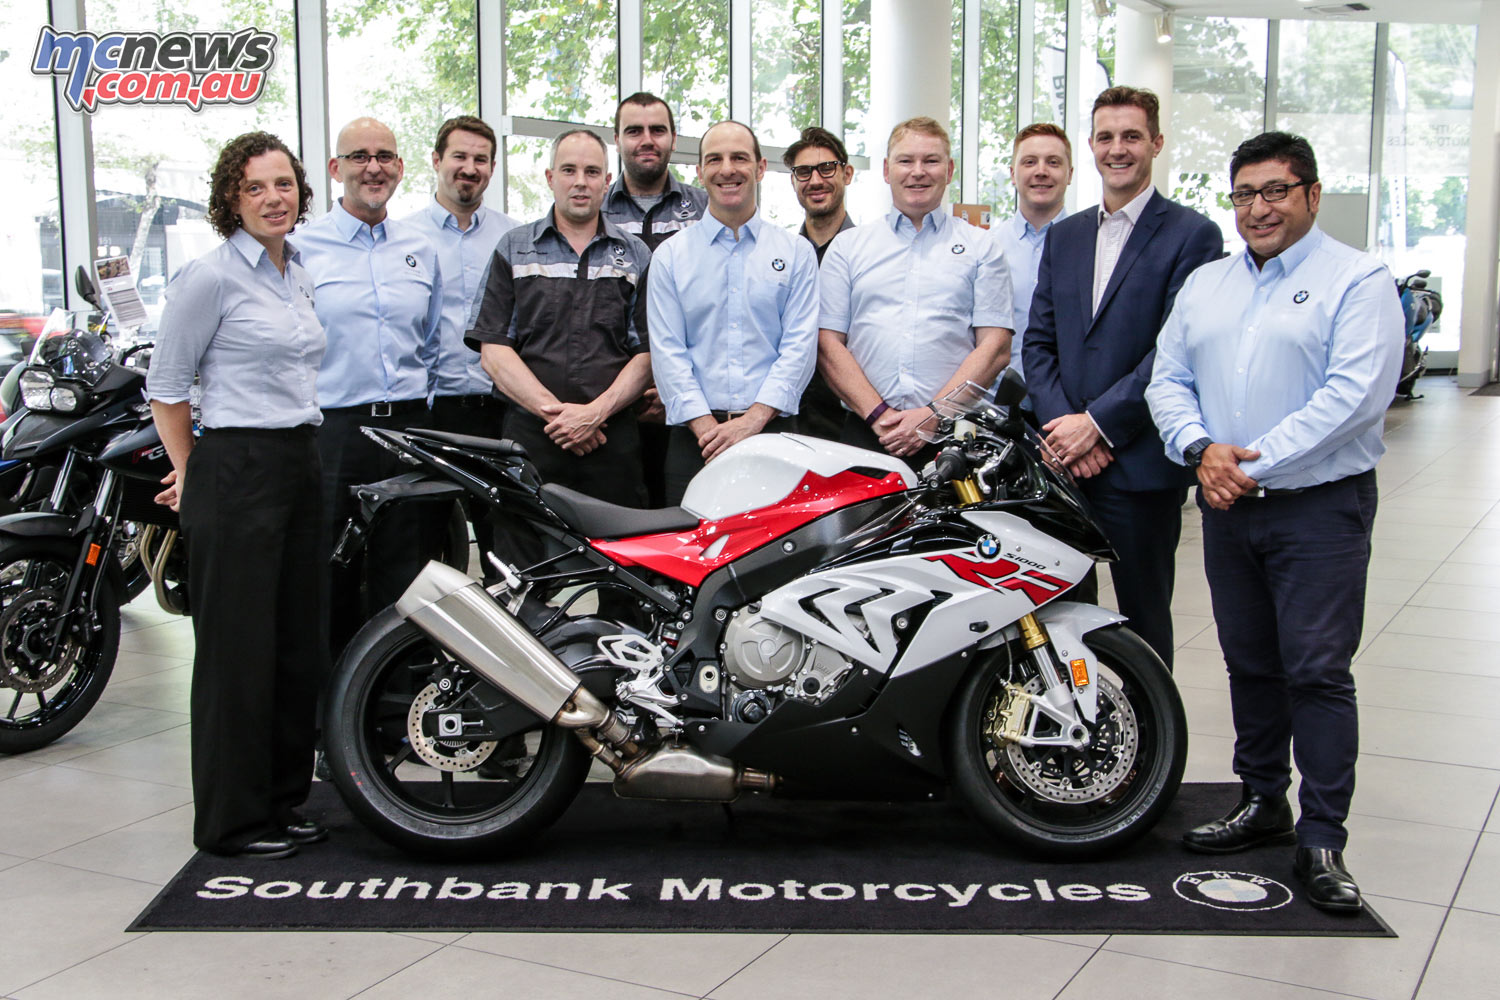 The Southbank BMW Motorrad Team - Winners of the 2016 BMW Motorrad Dealer of the Year Award